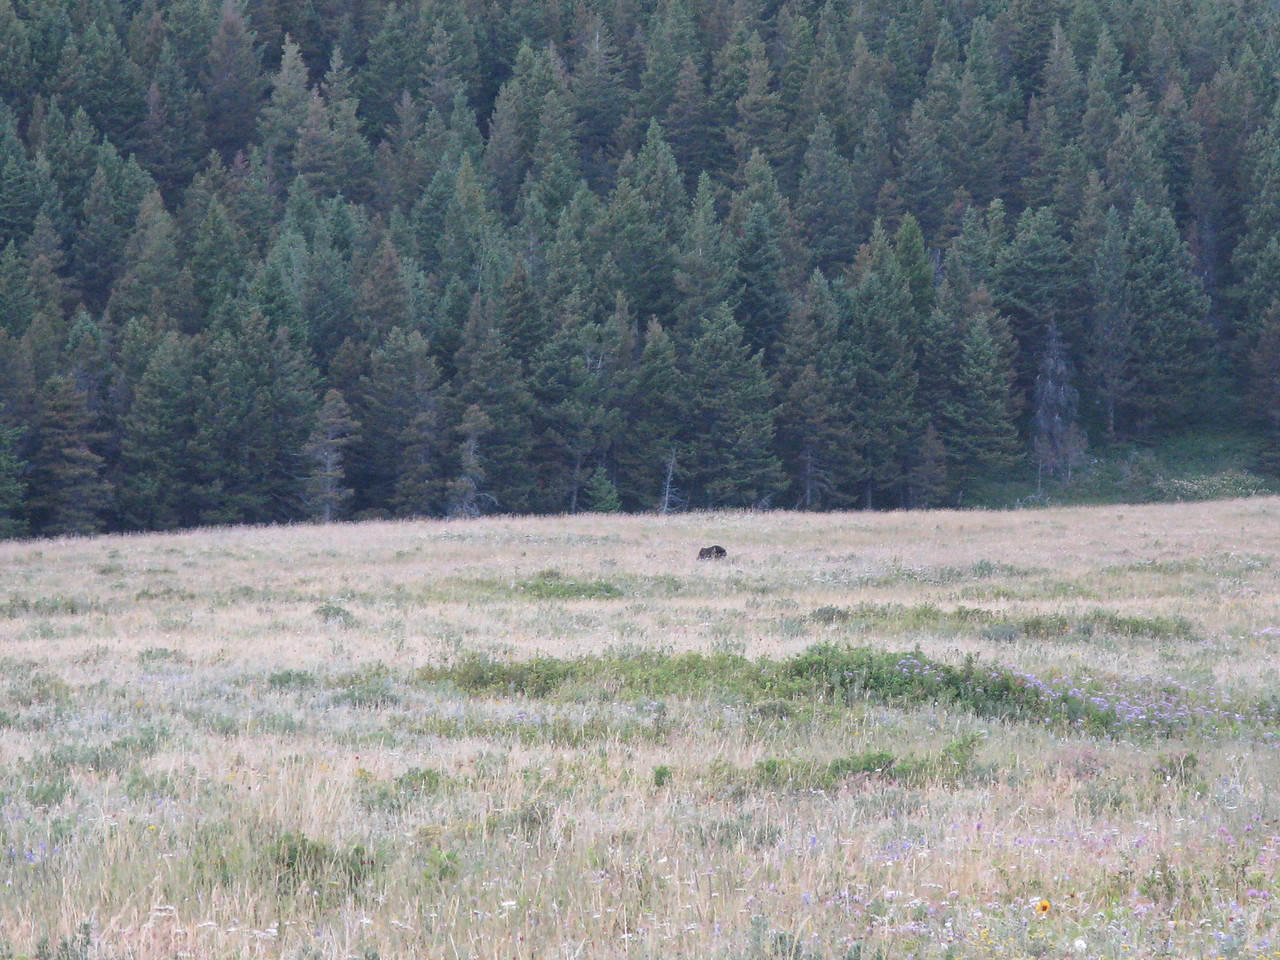 We learned that our favorite grizzly tends to hang out in this meadow every morning and evening.  (What the rangers won't tell you!) It was the same place we had seen him on the previous day.